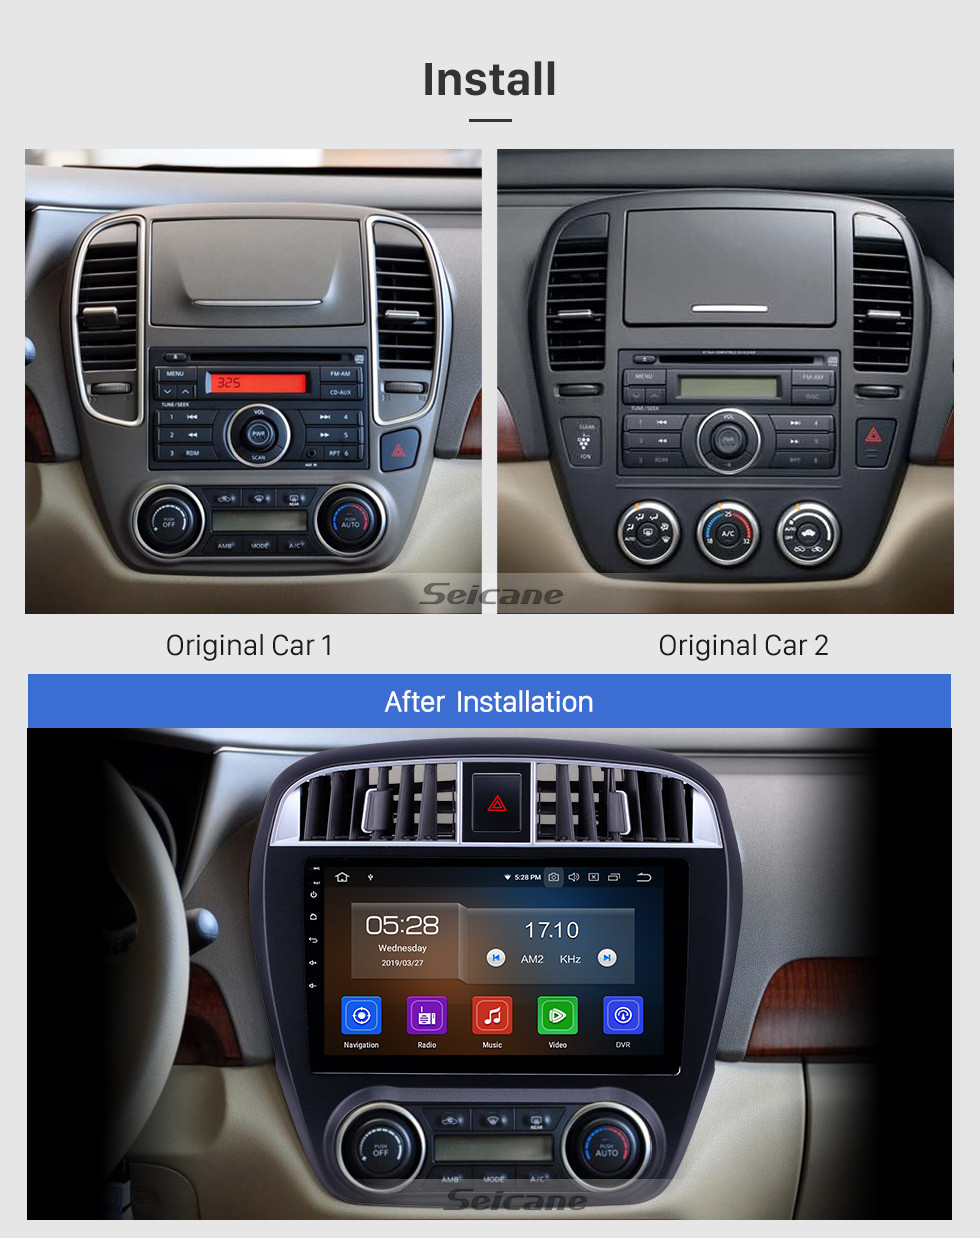 Seicane 2009 Nissan Sylphy Android 10.0 10.1 inch GPS Navigation Radio Bluetooth AUX HD Touchscreen USB Carplay support TPMS DVR Digital TV Backup camera